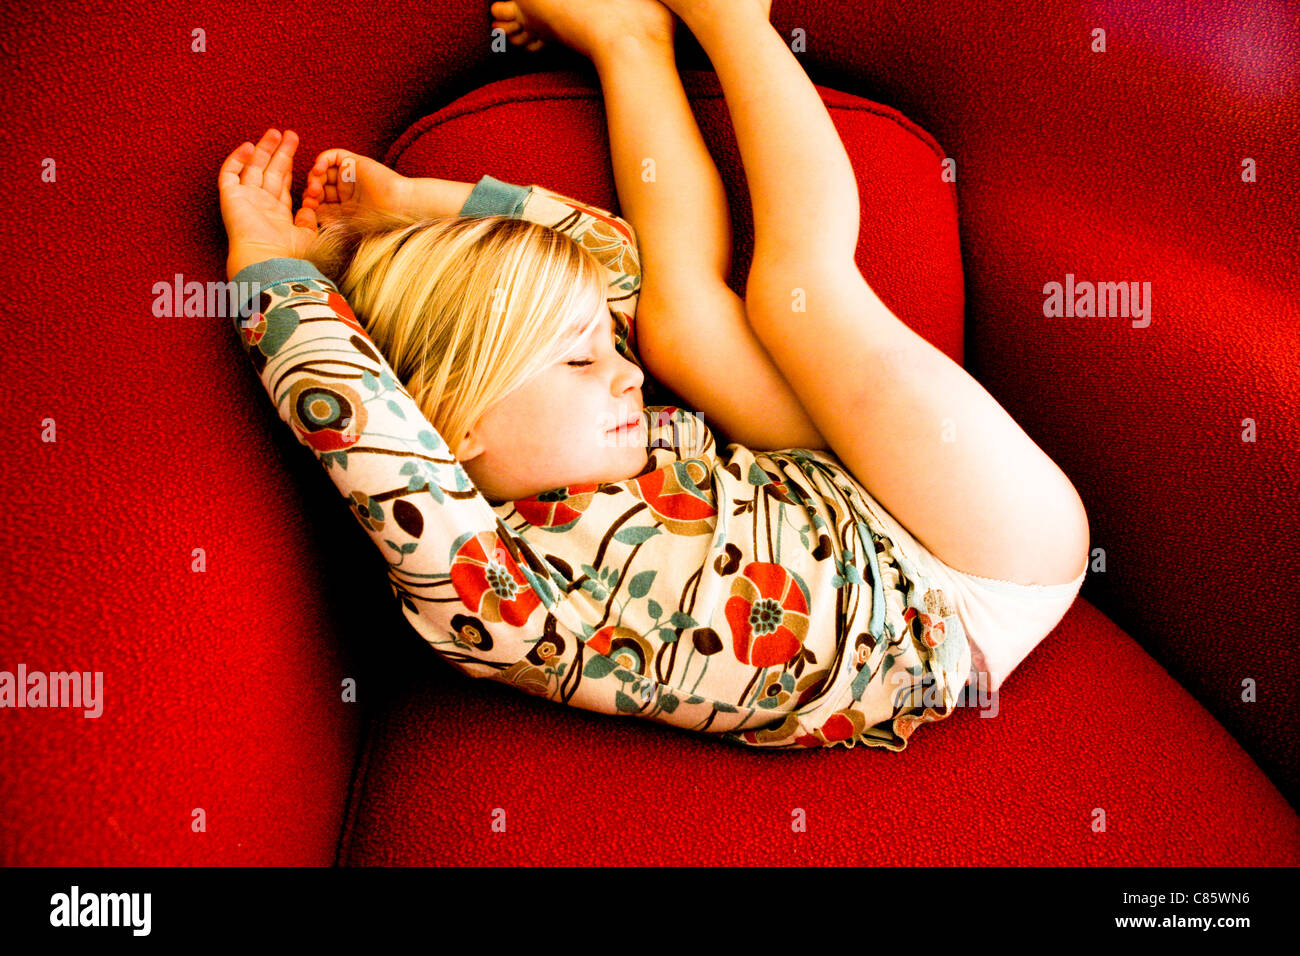 Red chair photography - Little Girl Sleeping Curled Up On A Red Chair